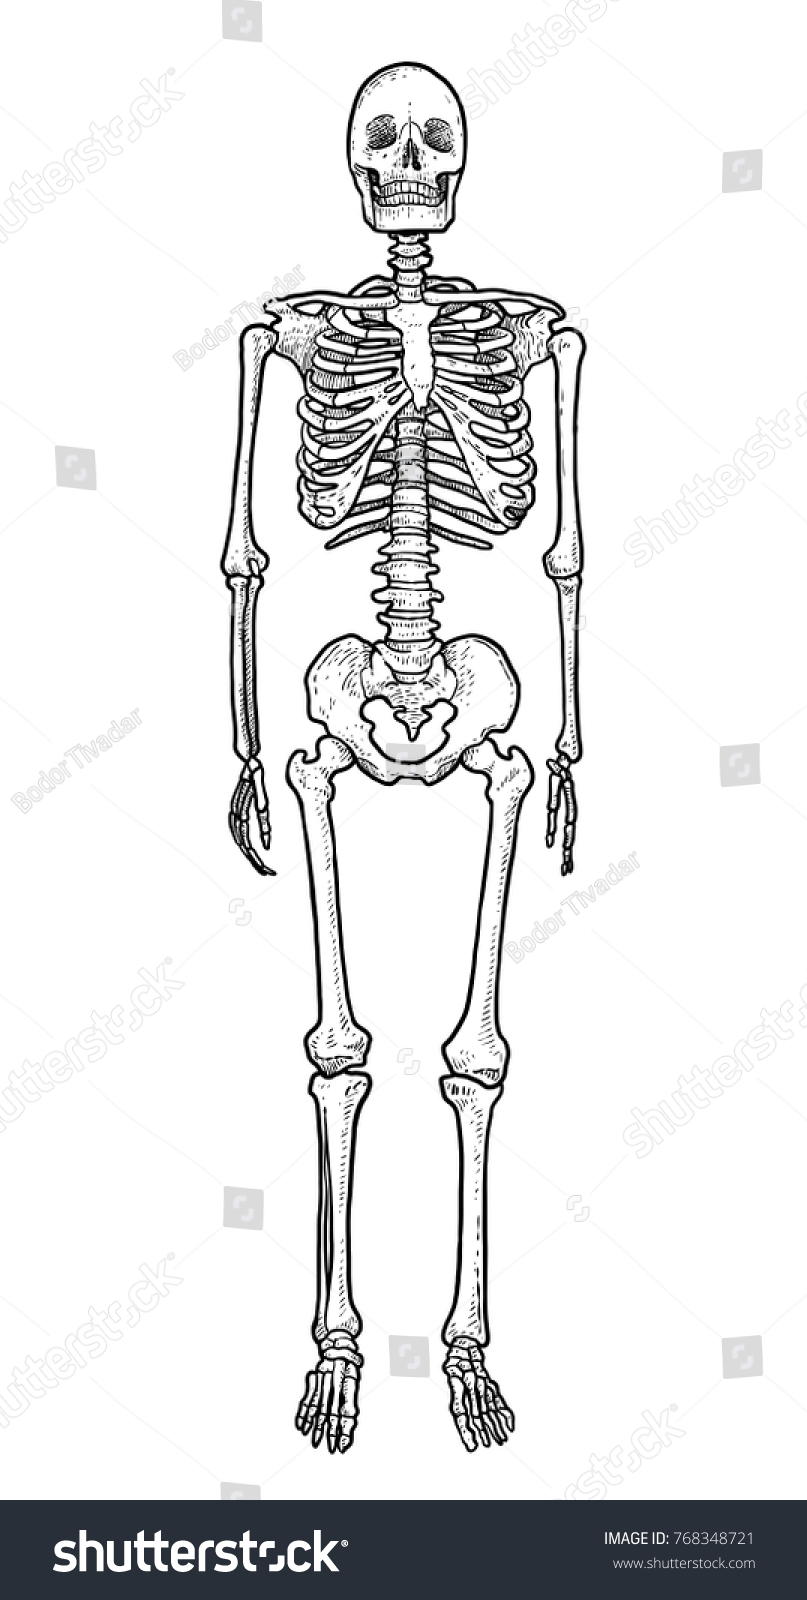 Human Skeleton Illustration Drawing Engraving Ink Stock Vector